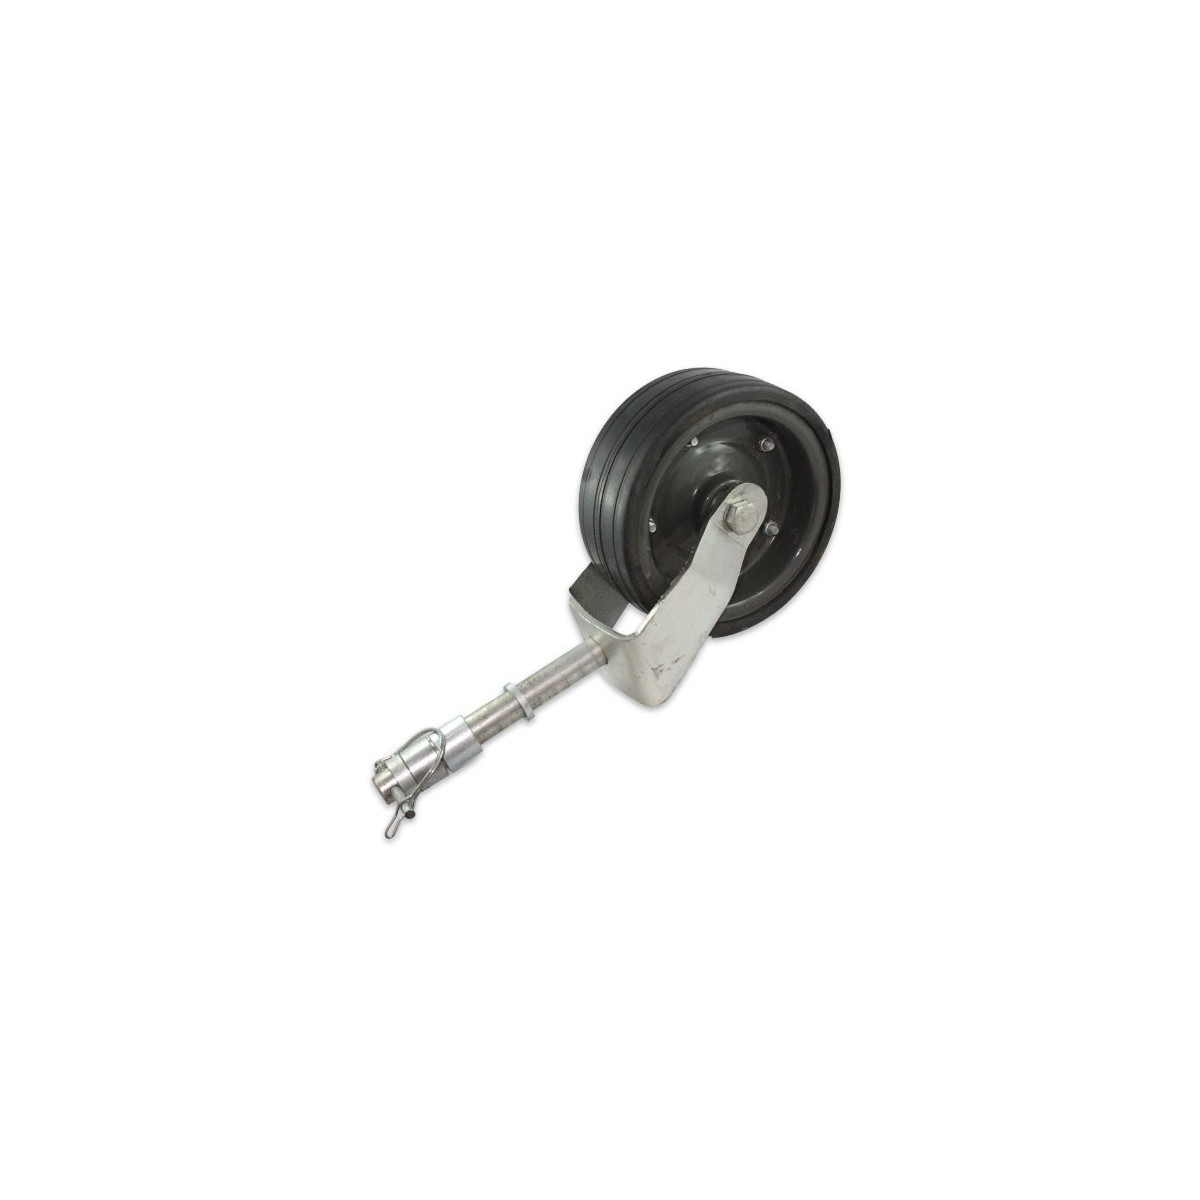 Support wheel for mower FM 120 FM 150 FM 180